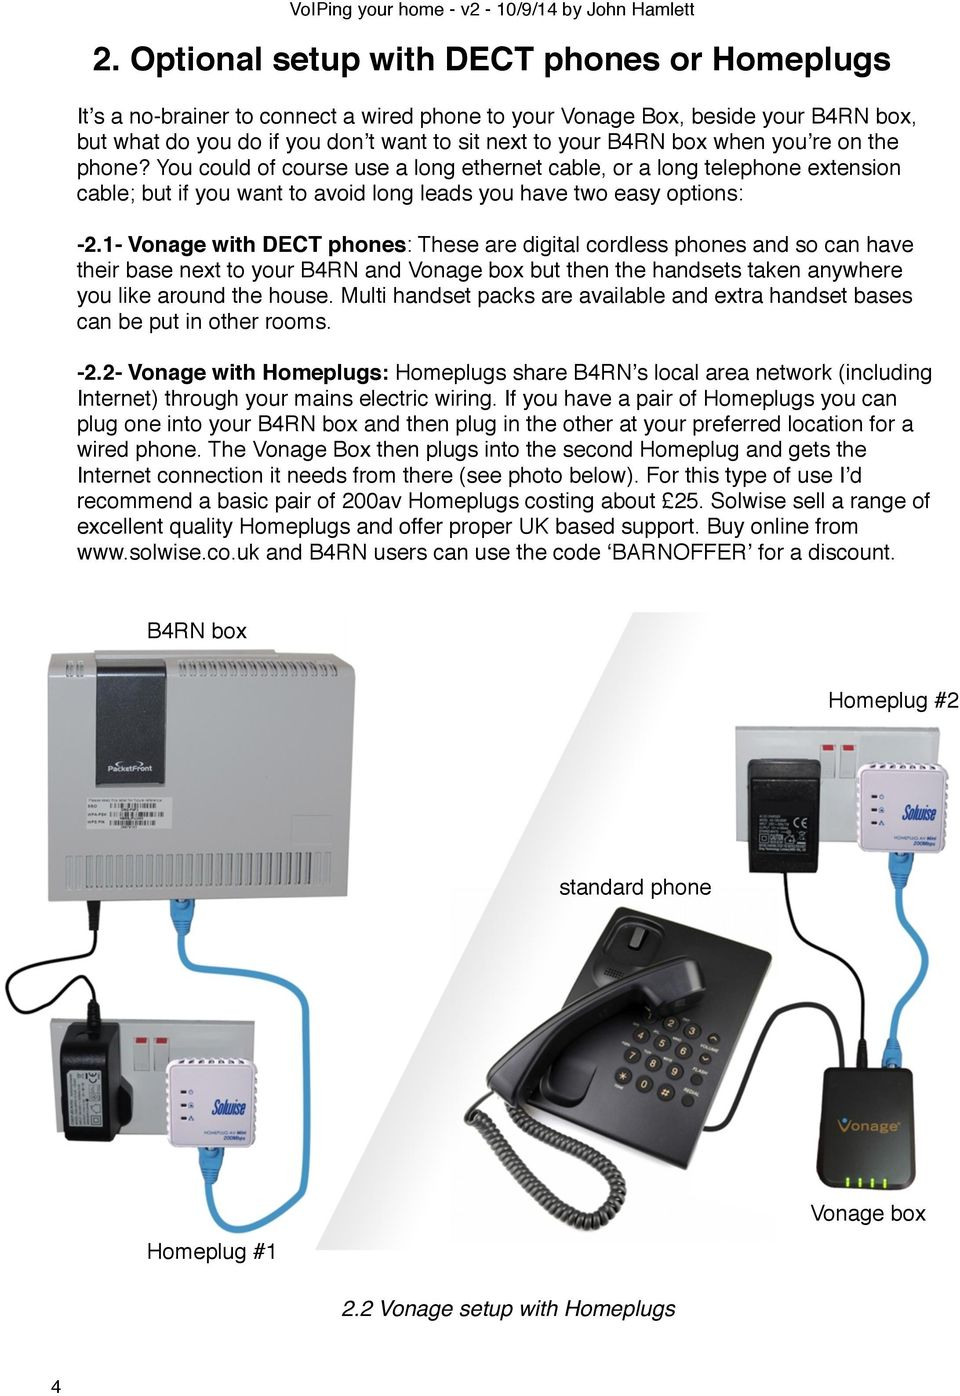 hight resolution of 1 vonage with dect phones these are digital cordless phones and so can have